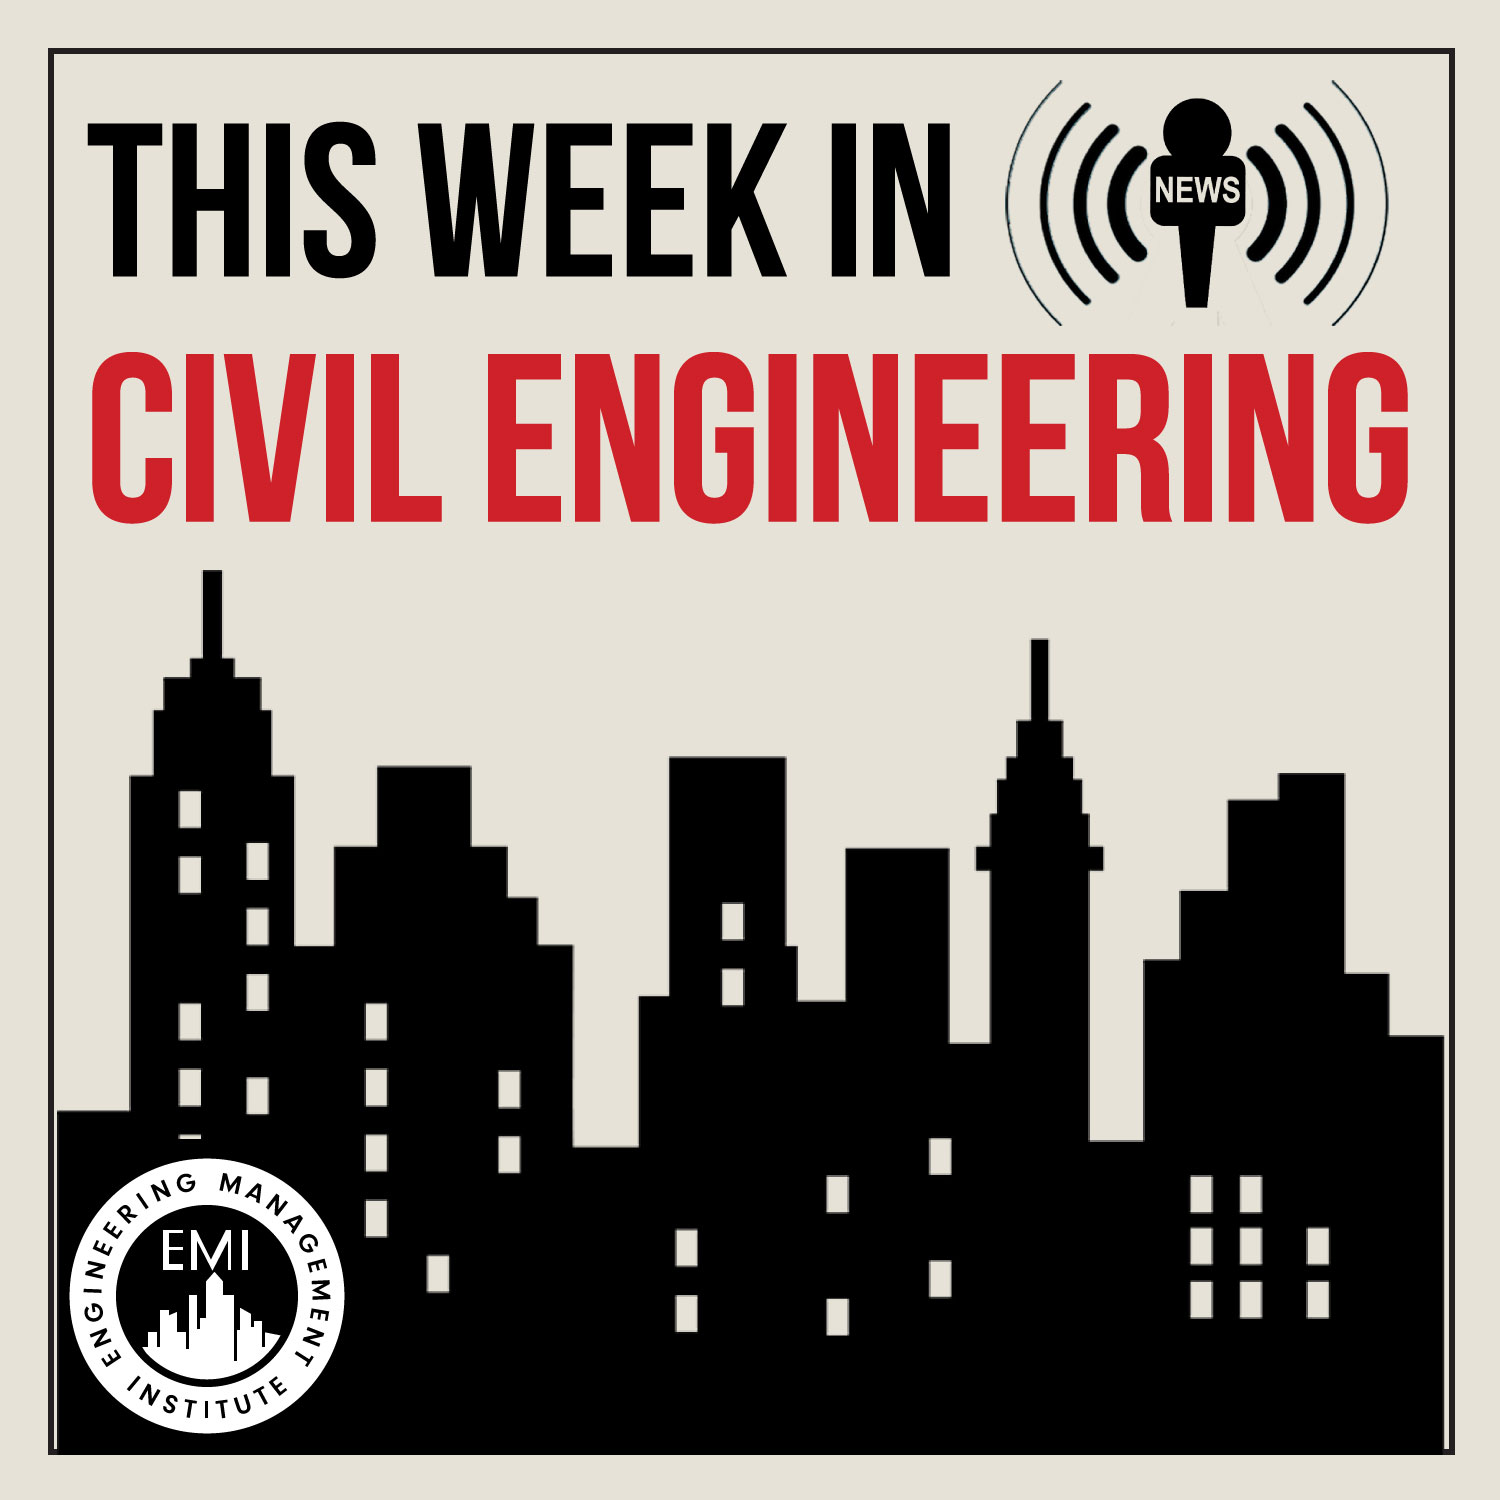 TWiCE - This Week in Civil Engineering